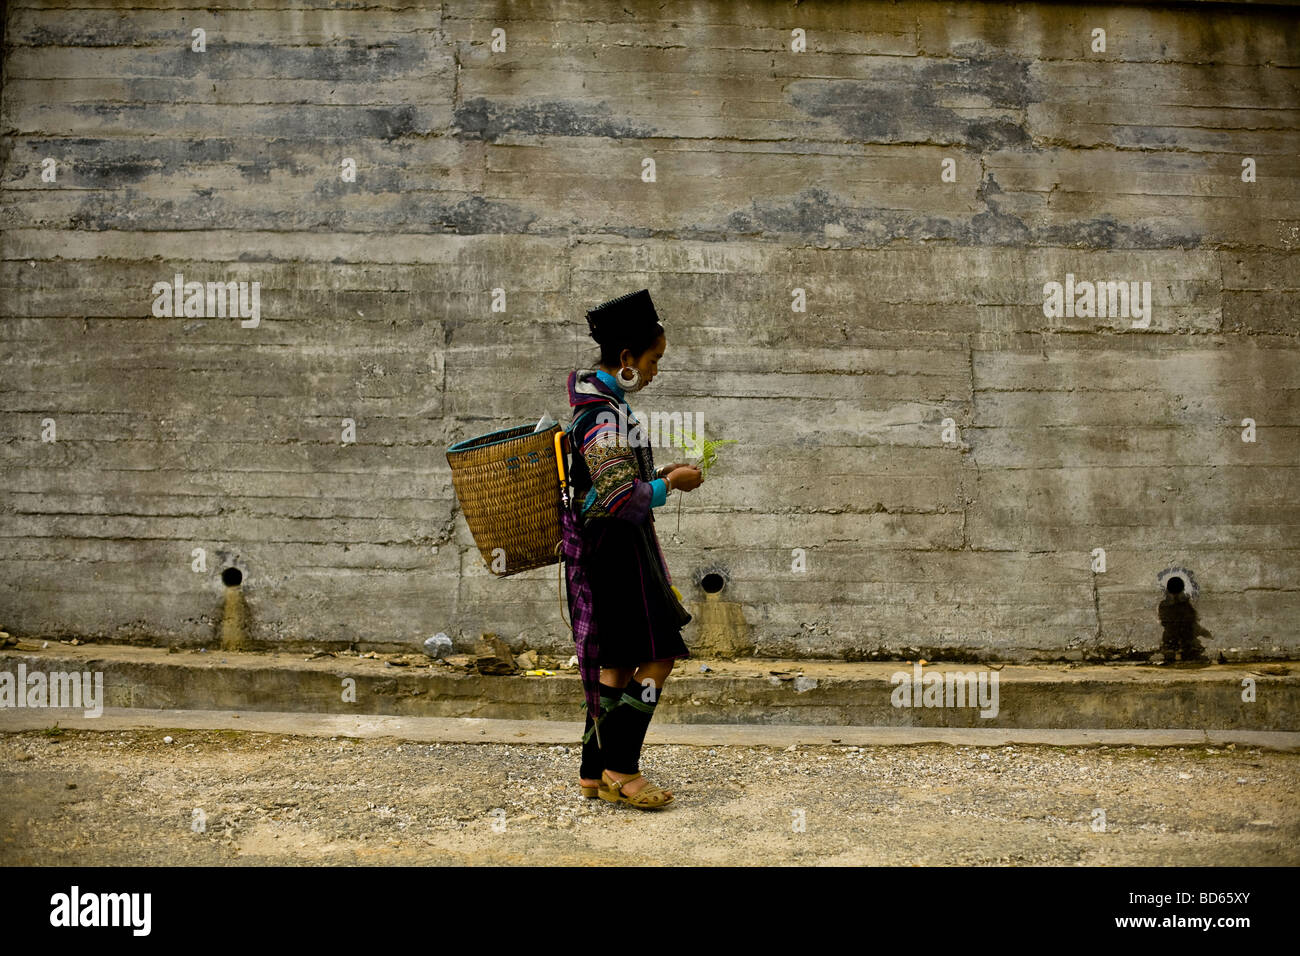 A Black Hmong woman walks along past a new cement wall in Sapa in northern Vietnam - Stock Image